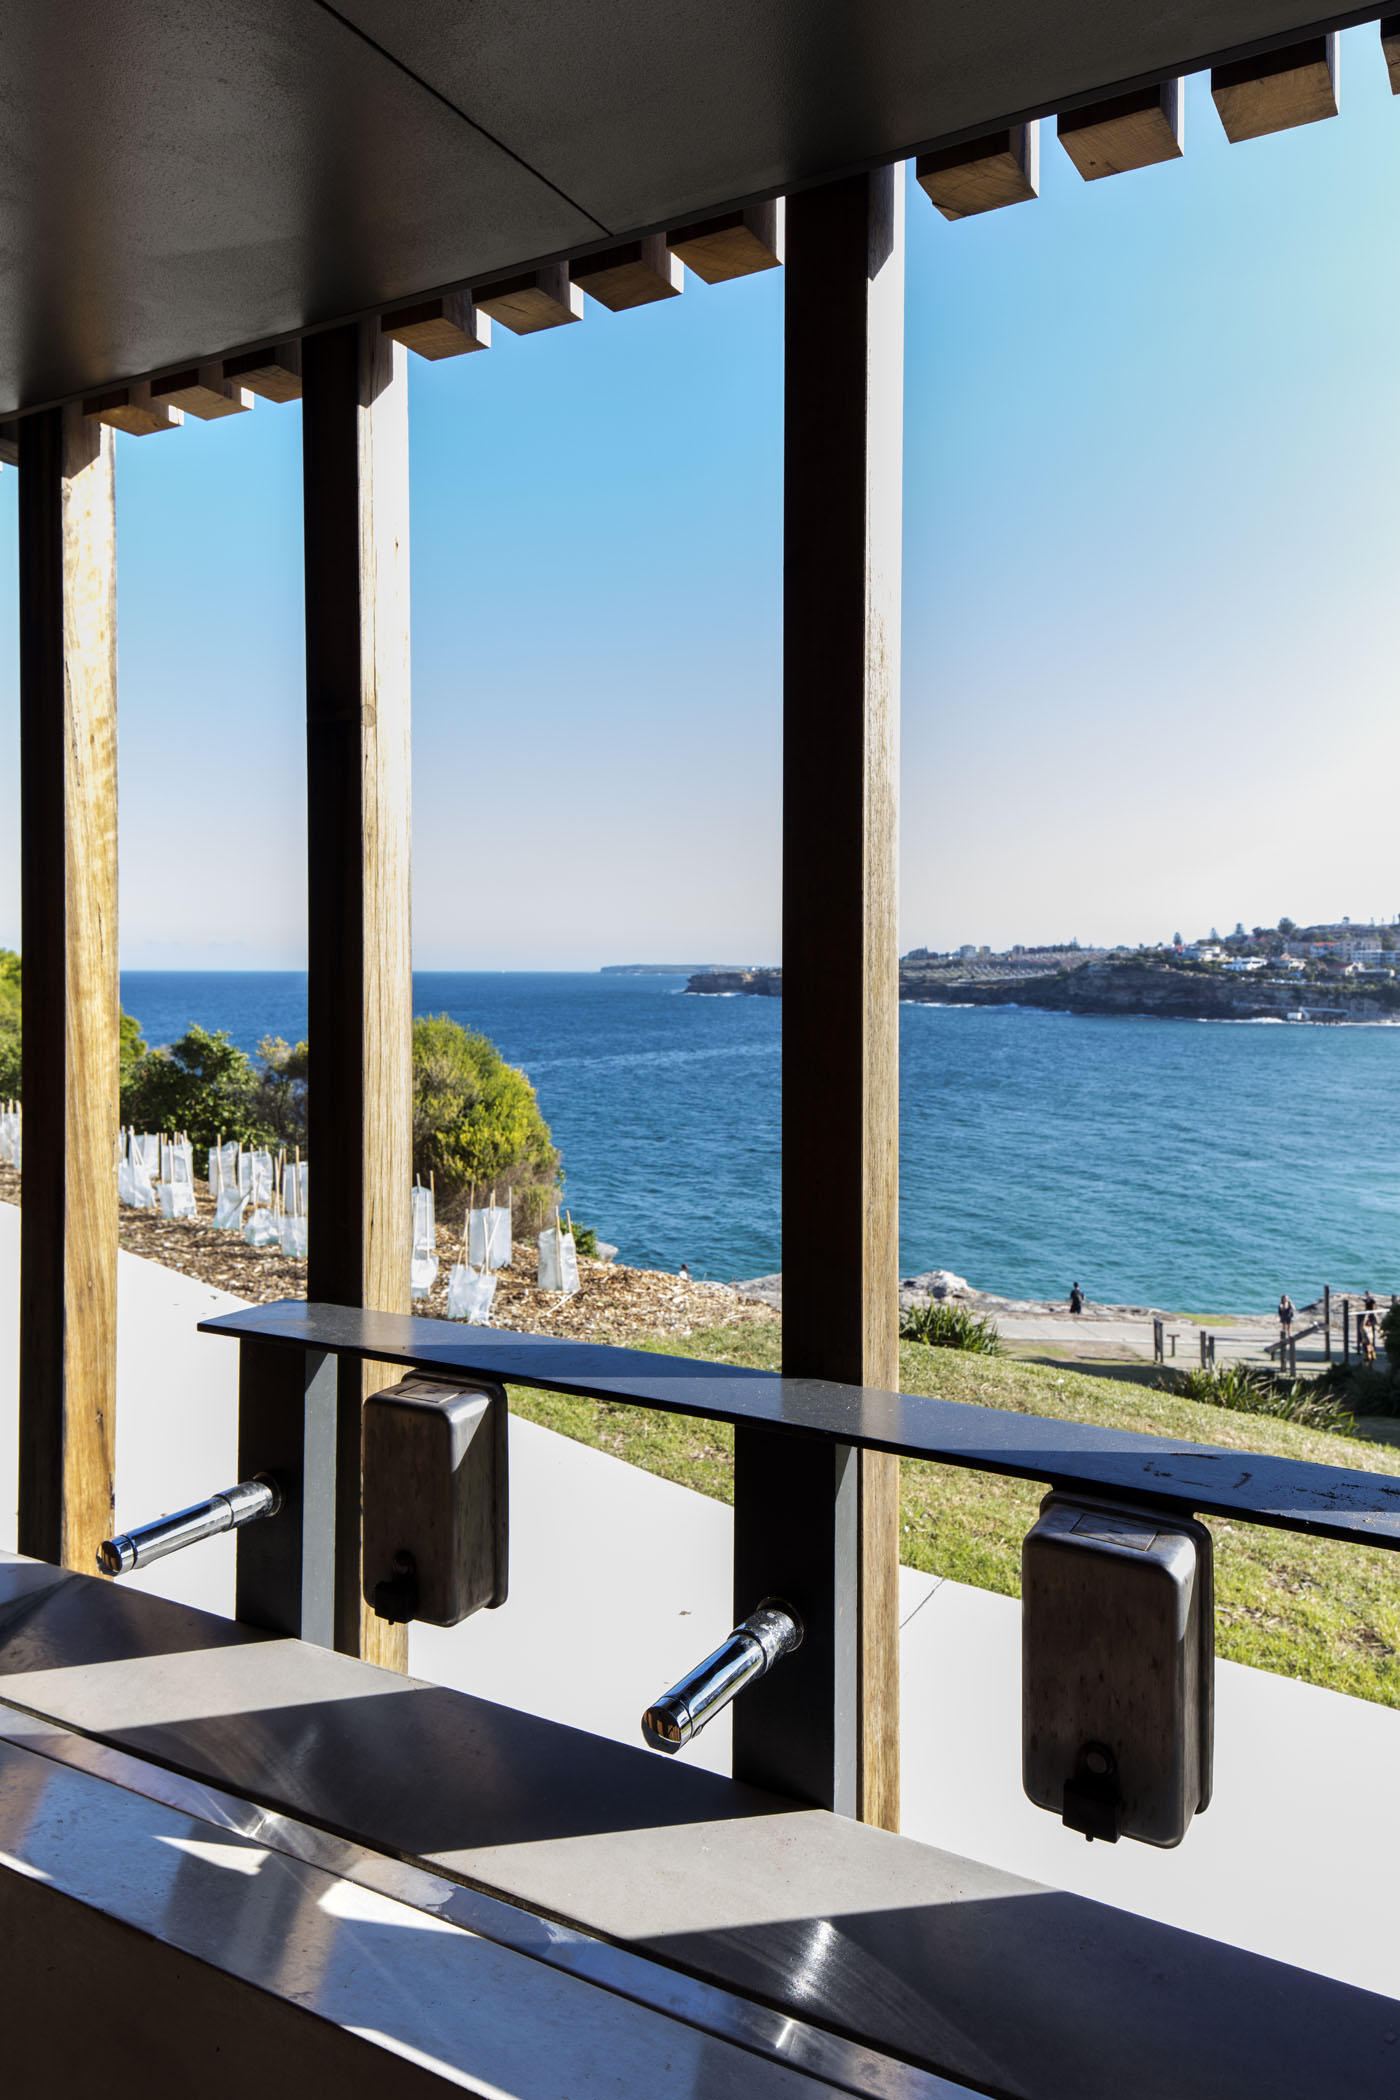 Marks Park Amenities by Sam Crawford Architects, view onto Bondi Bay from wash basin